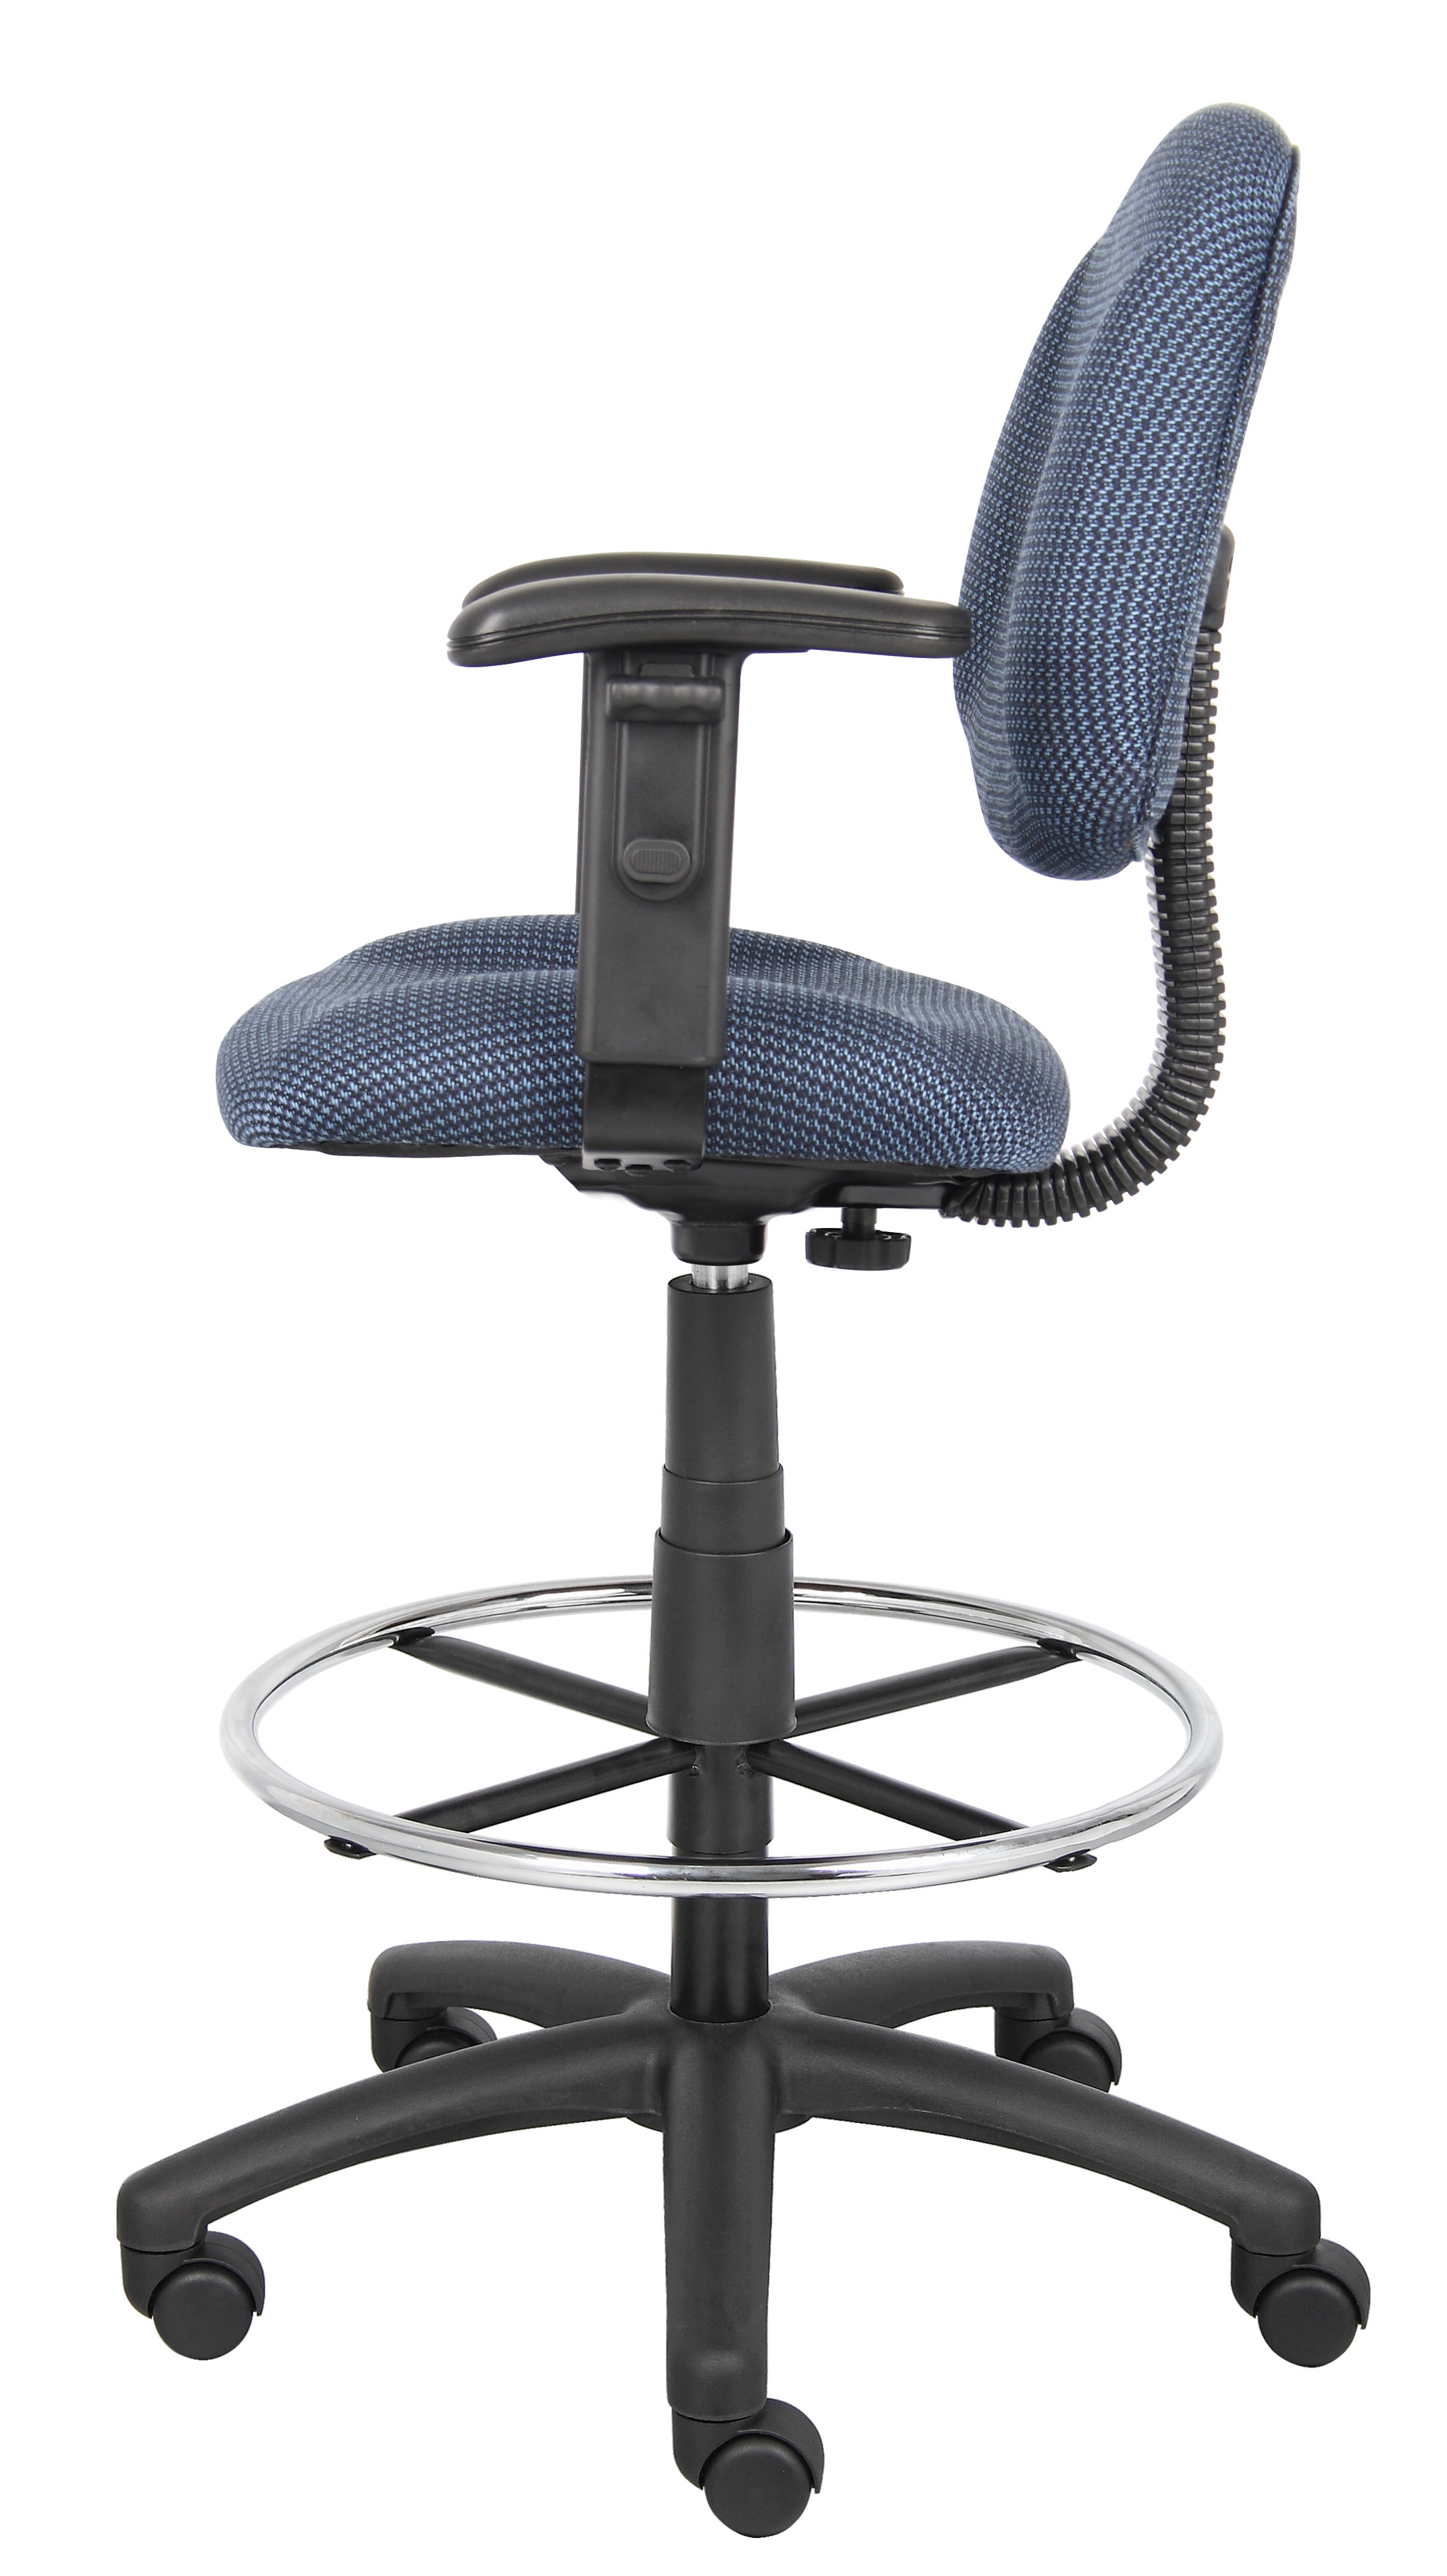 Remarkable Boss Ergonomic Works Adustable Drafting Chair With Adjustable Arms And Removable Foot Rest Blue Creativecarmelina Interior Chair Design Creativecarmelinacom